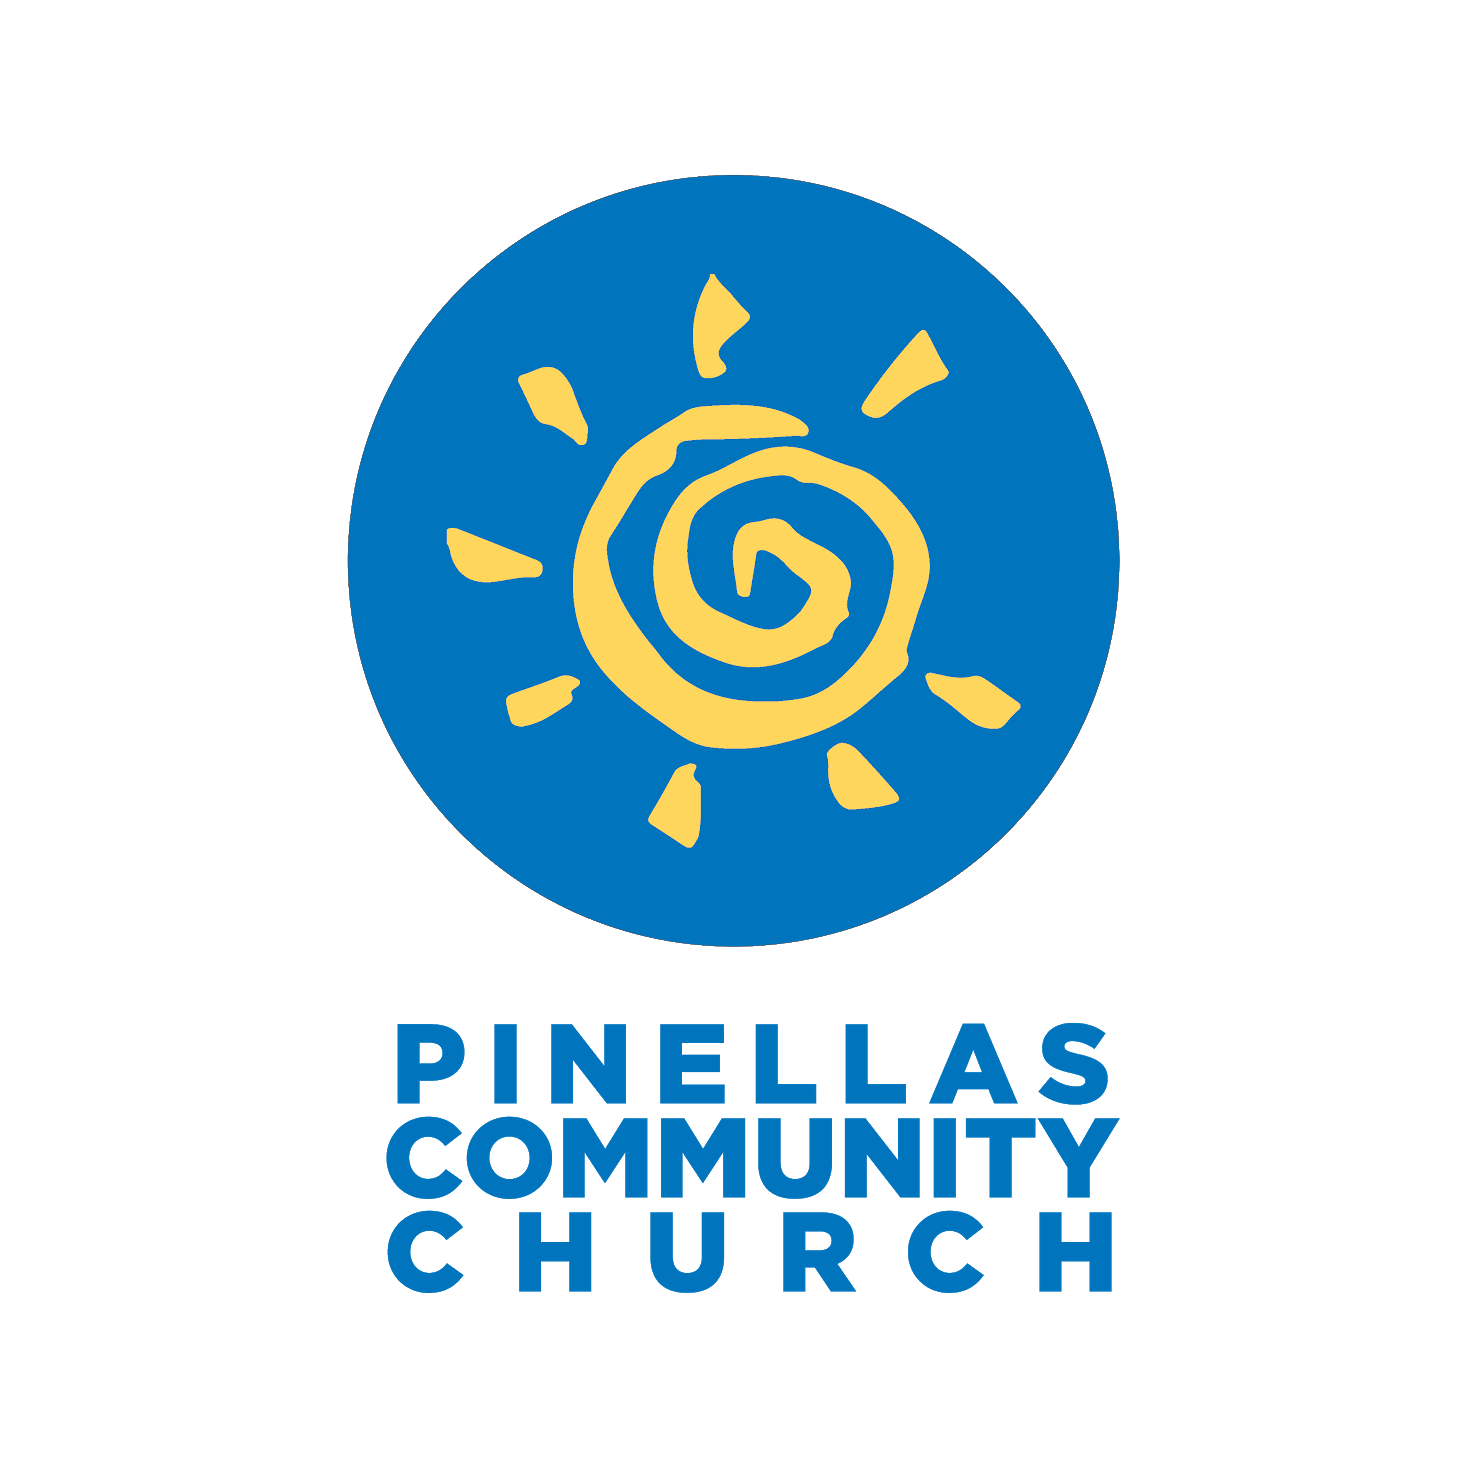 Pinellas Community Church exists to connect people to Jesus and each other. We do that by being an authentic champion for community and by being integrated within all efforts of our city to ensure everyone feels loved in every aspect of their lives.